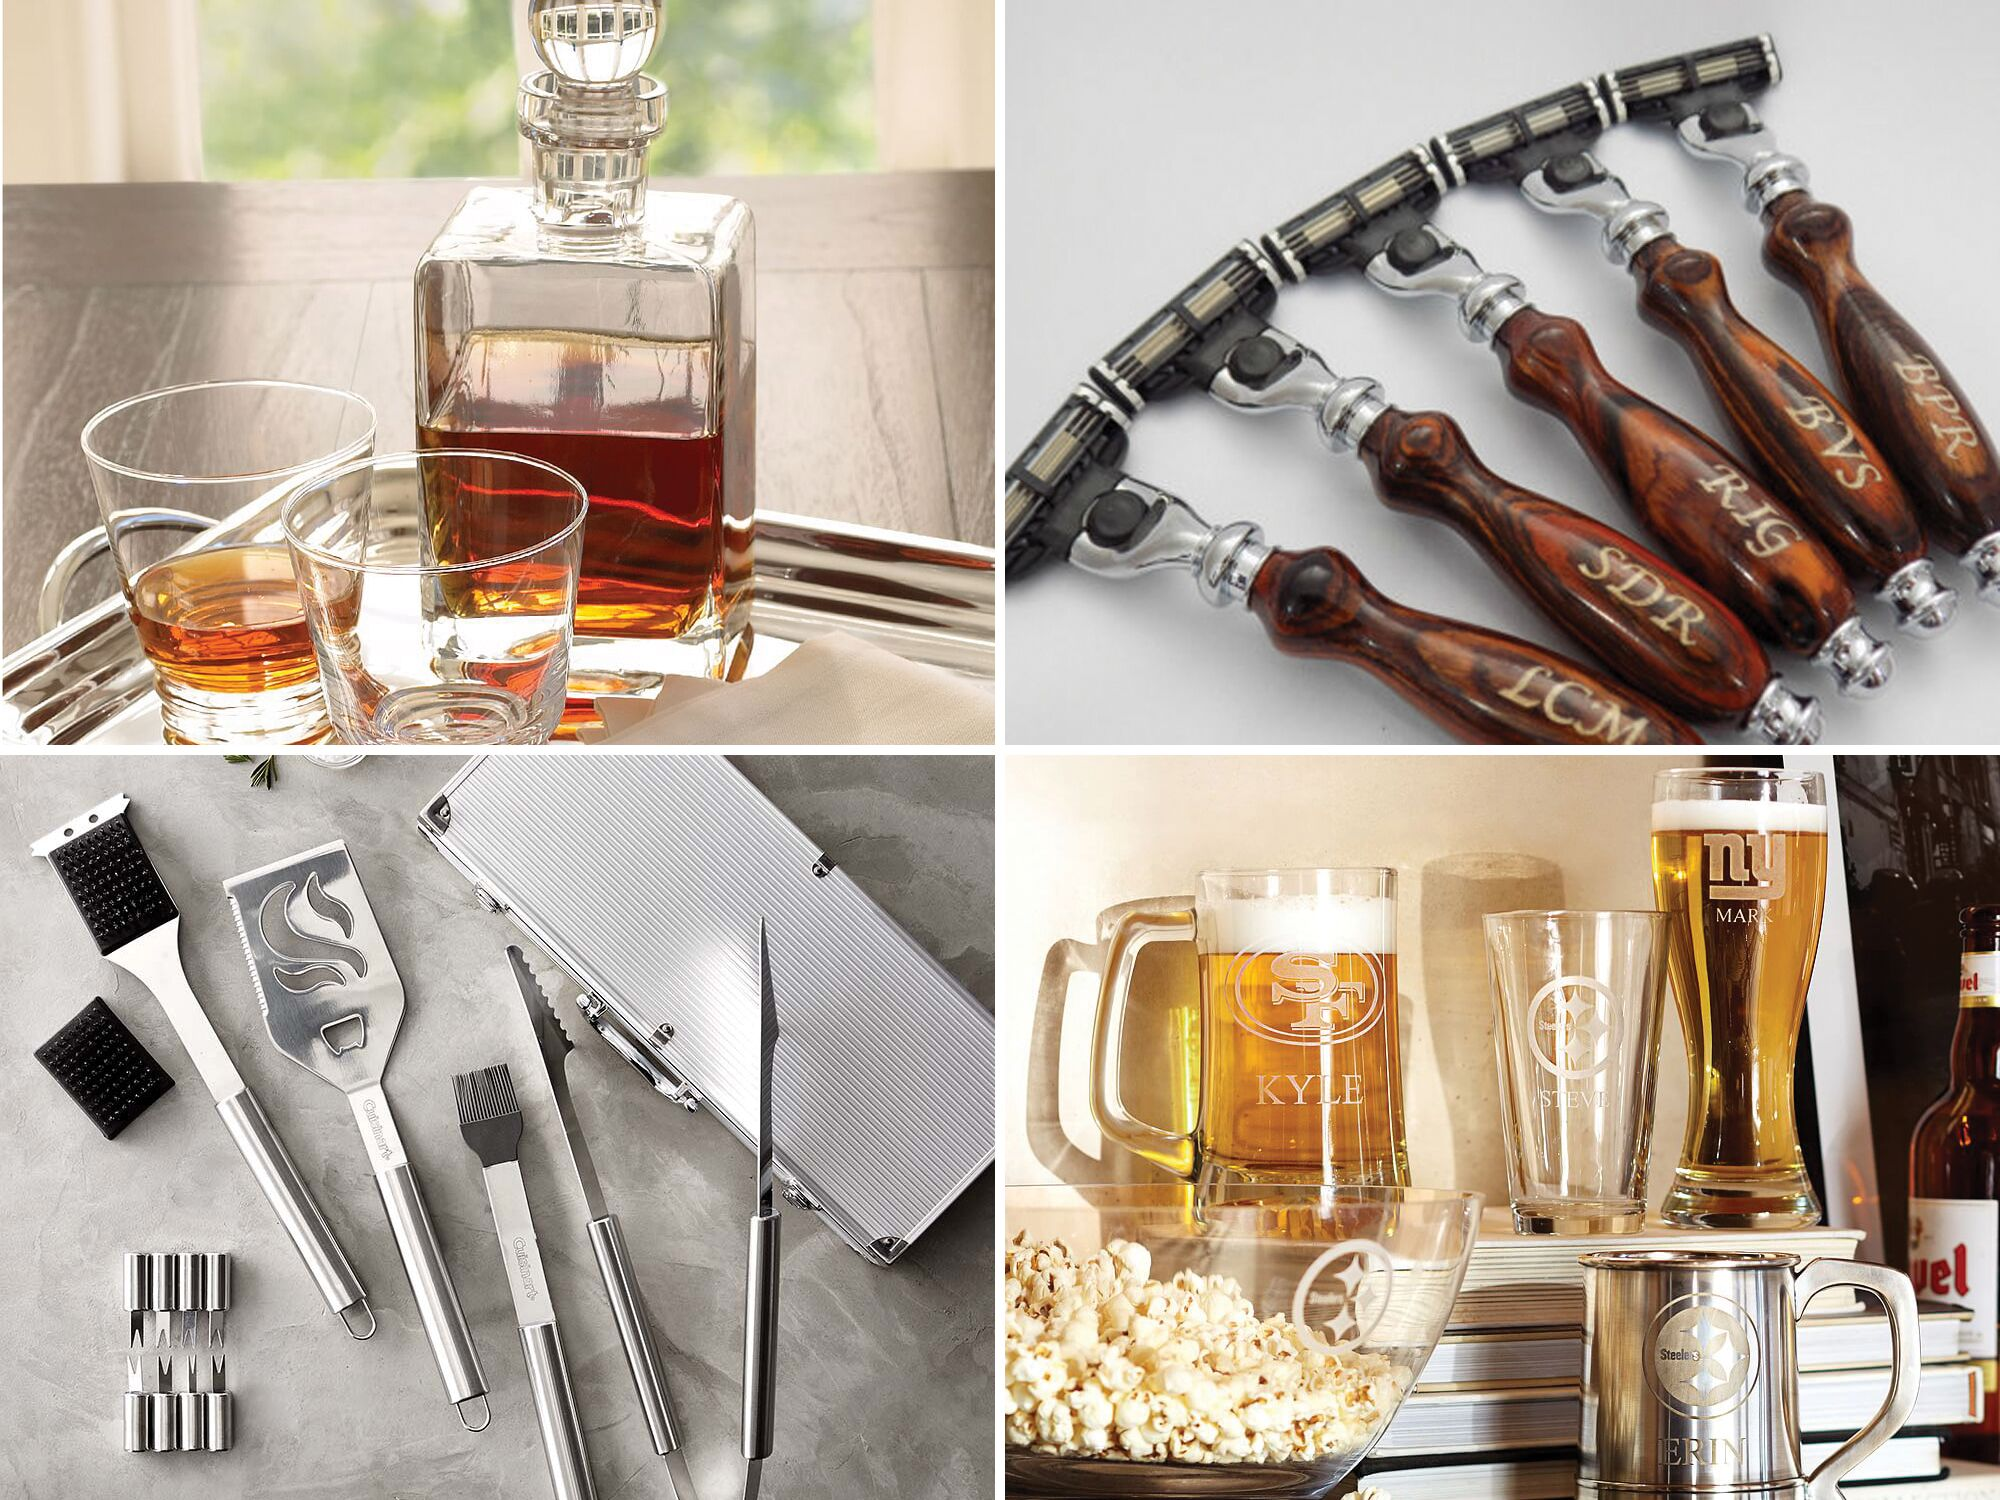 Personalization Wedding Gifts: 48 Groomsmen Gift Ideas